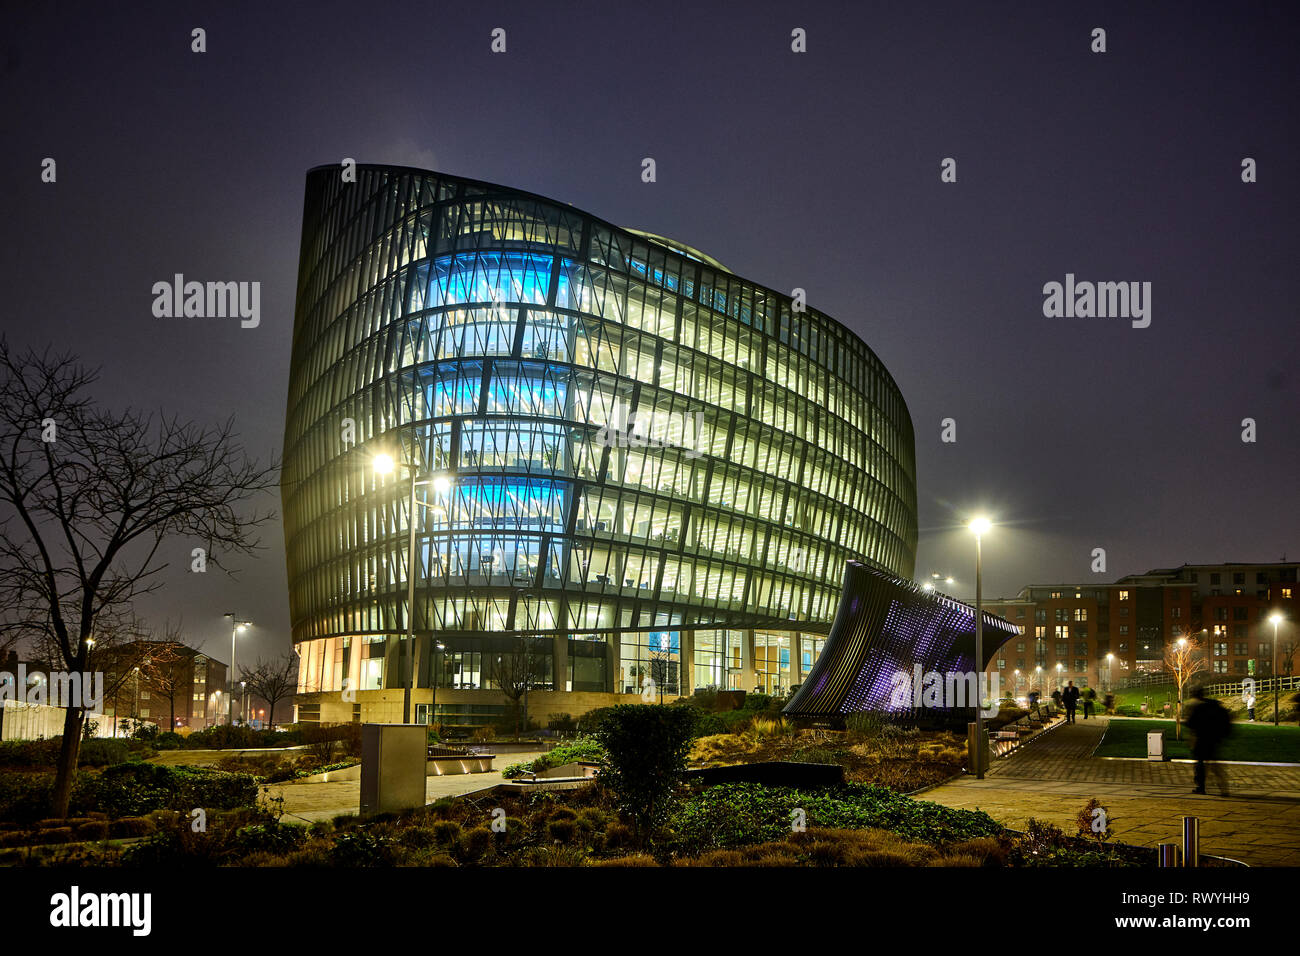 At night the NOMA development One Angel Square landmark head office of the Co-operative Group,  stainable energy credentials architecture Stock Photo